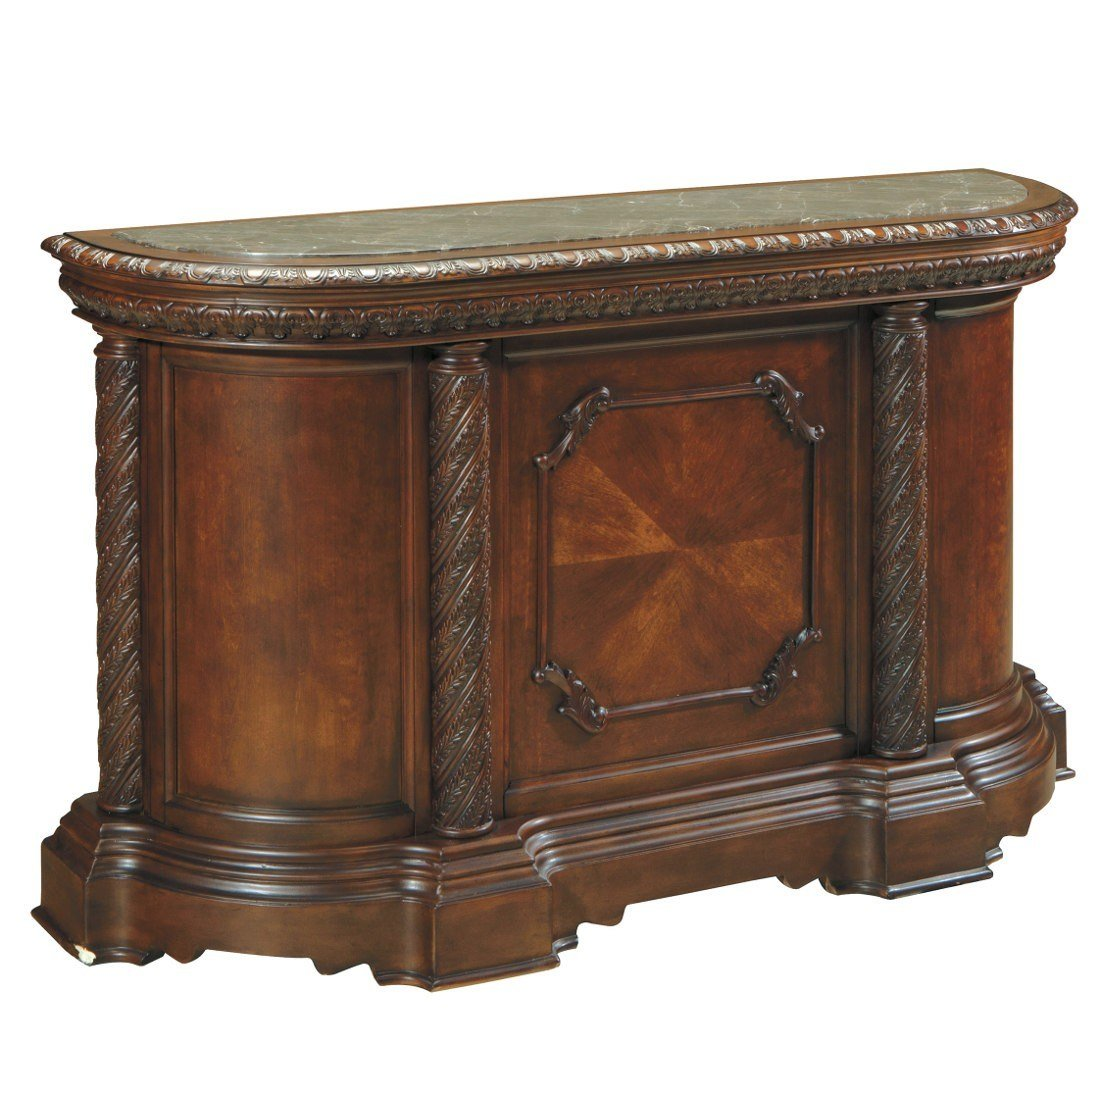 Best Furniture Ashley Furniture North Shore For Modern And With Pictures